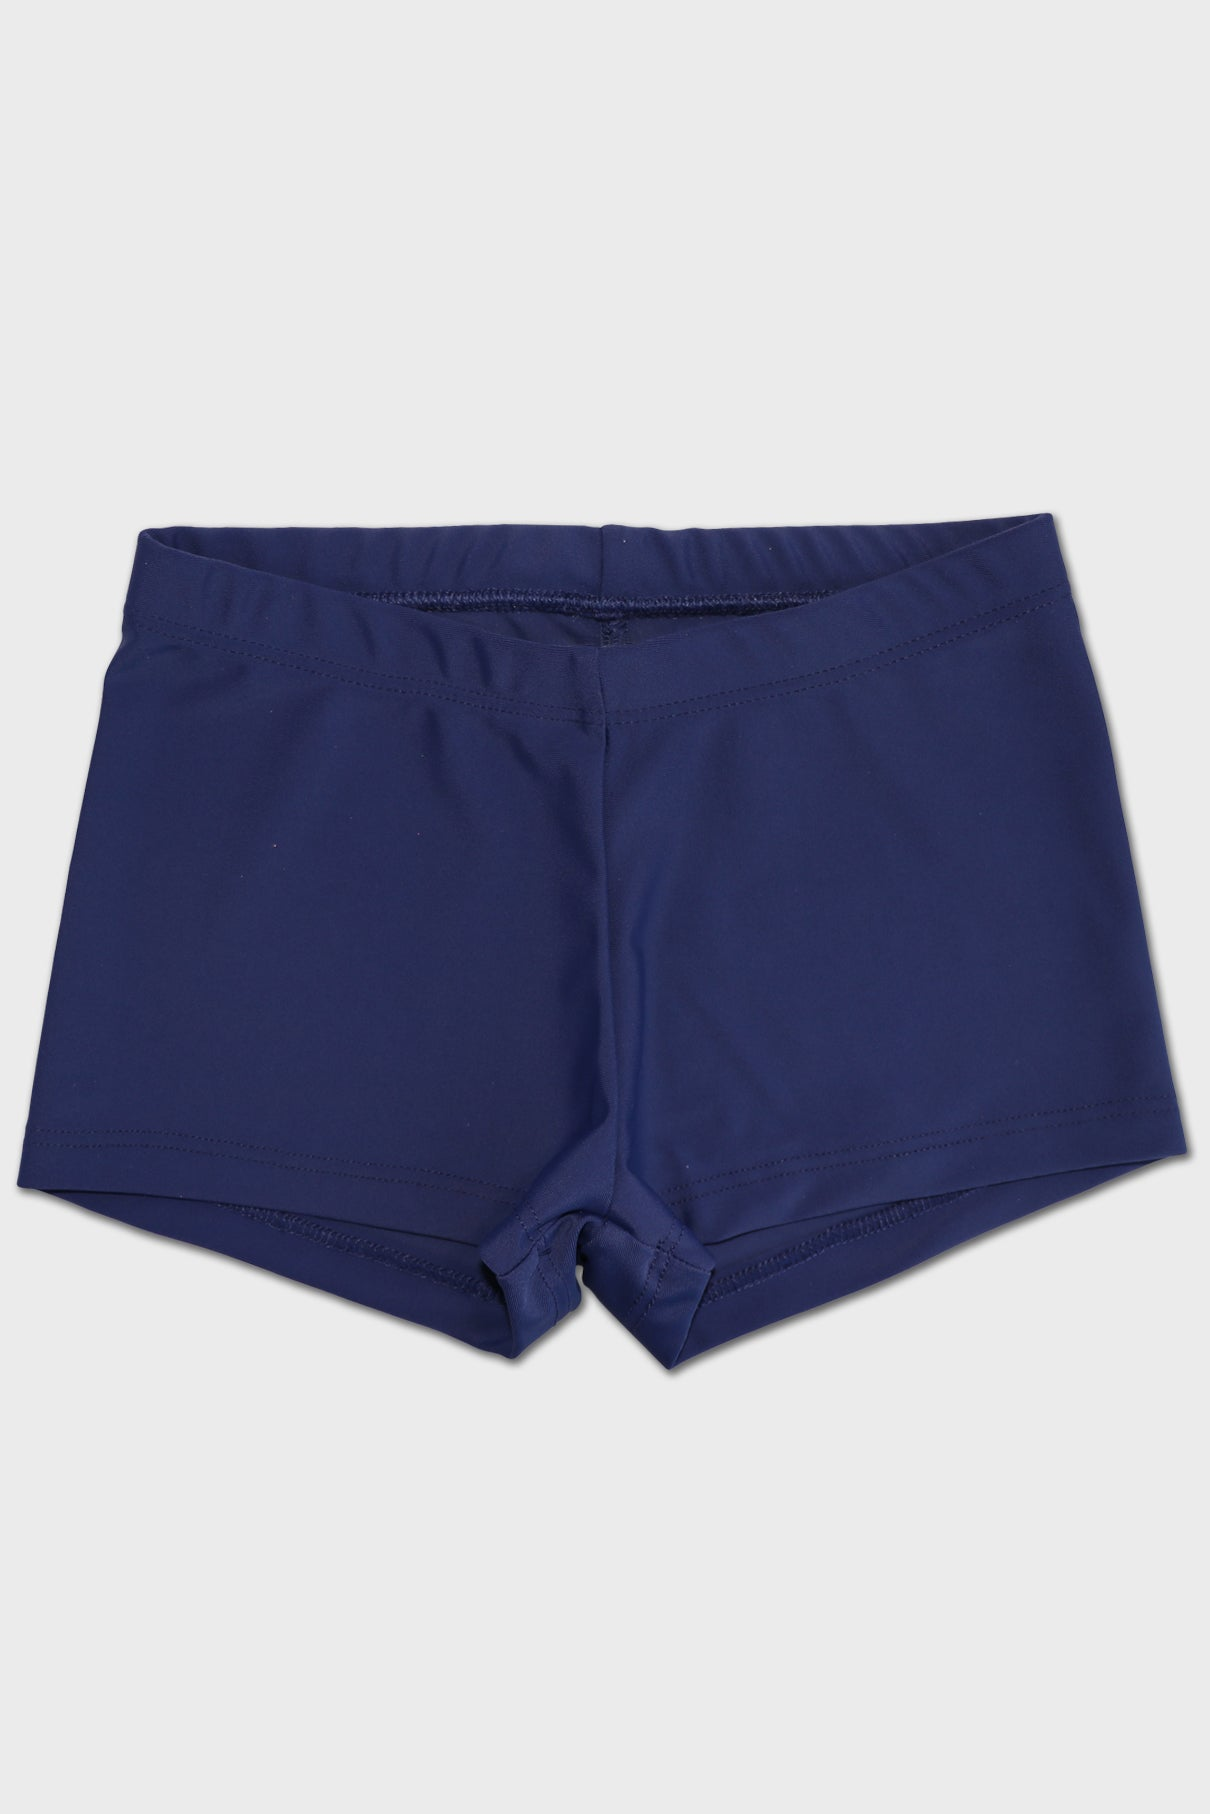 Nylon Shorts - Navy